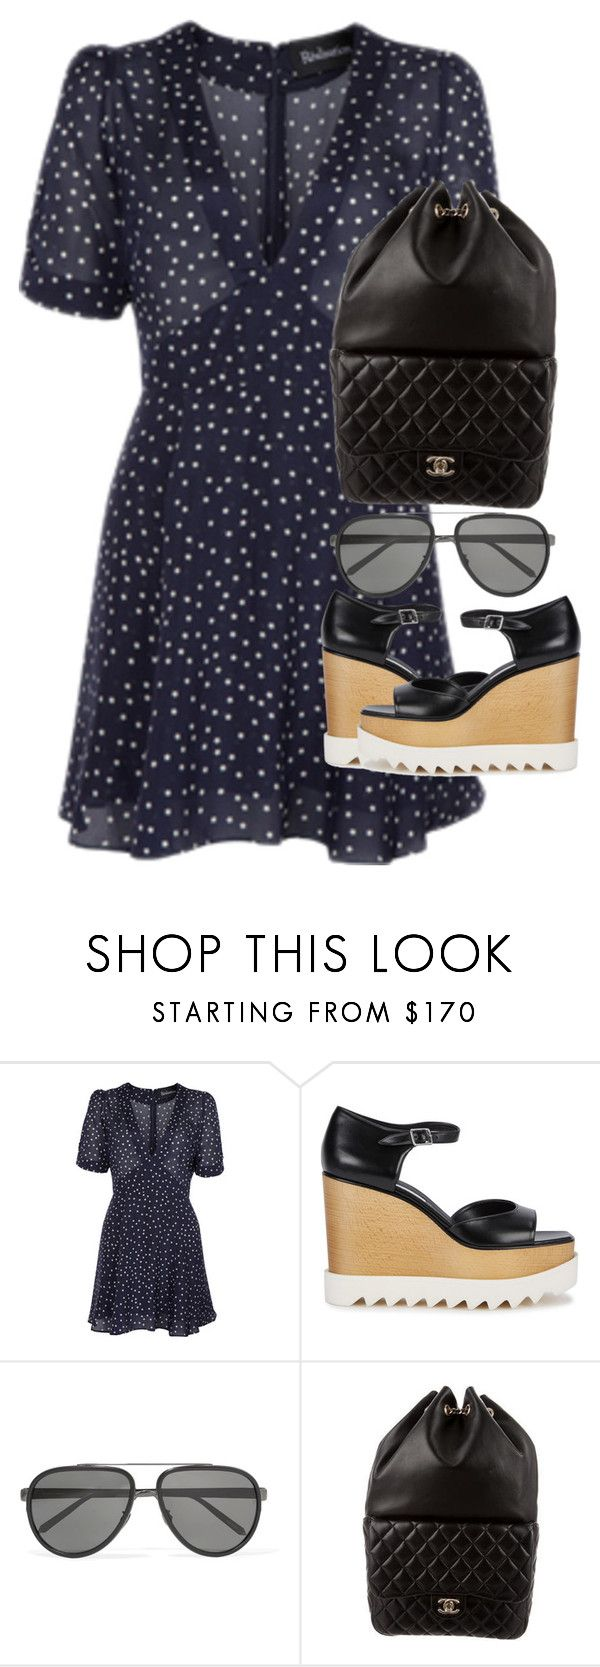 """Untitled #3083"" by elenaday ❤ liked on Polyvore featuring STELLA McCARTNEY, Linda Farrow and Chanel"